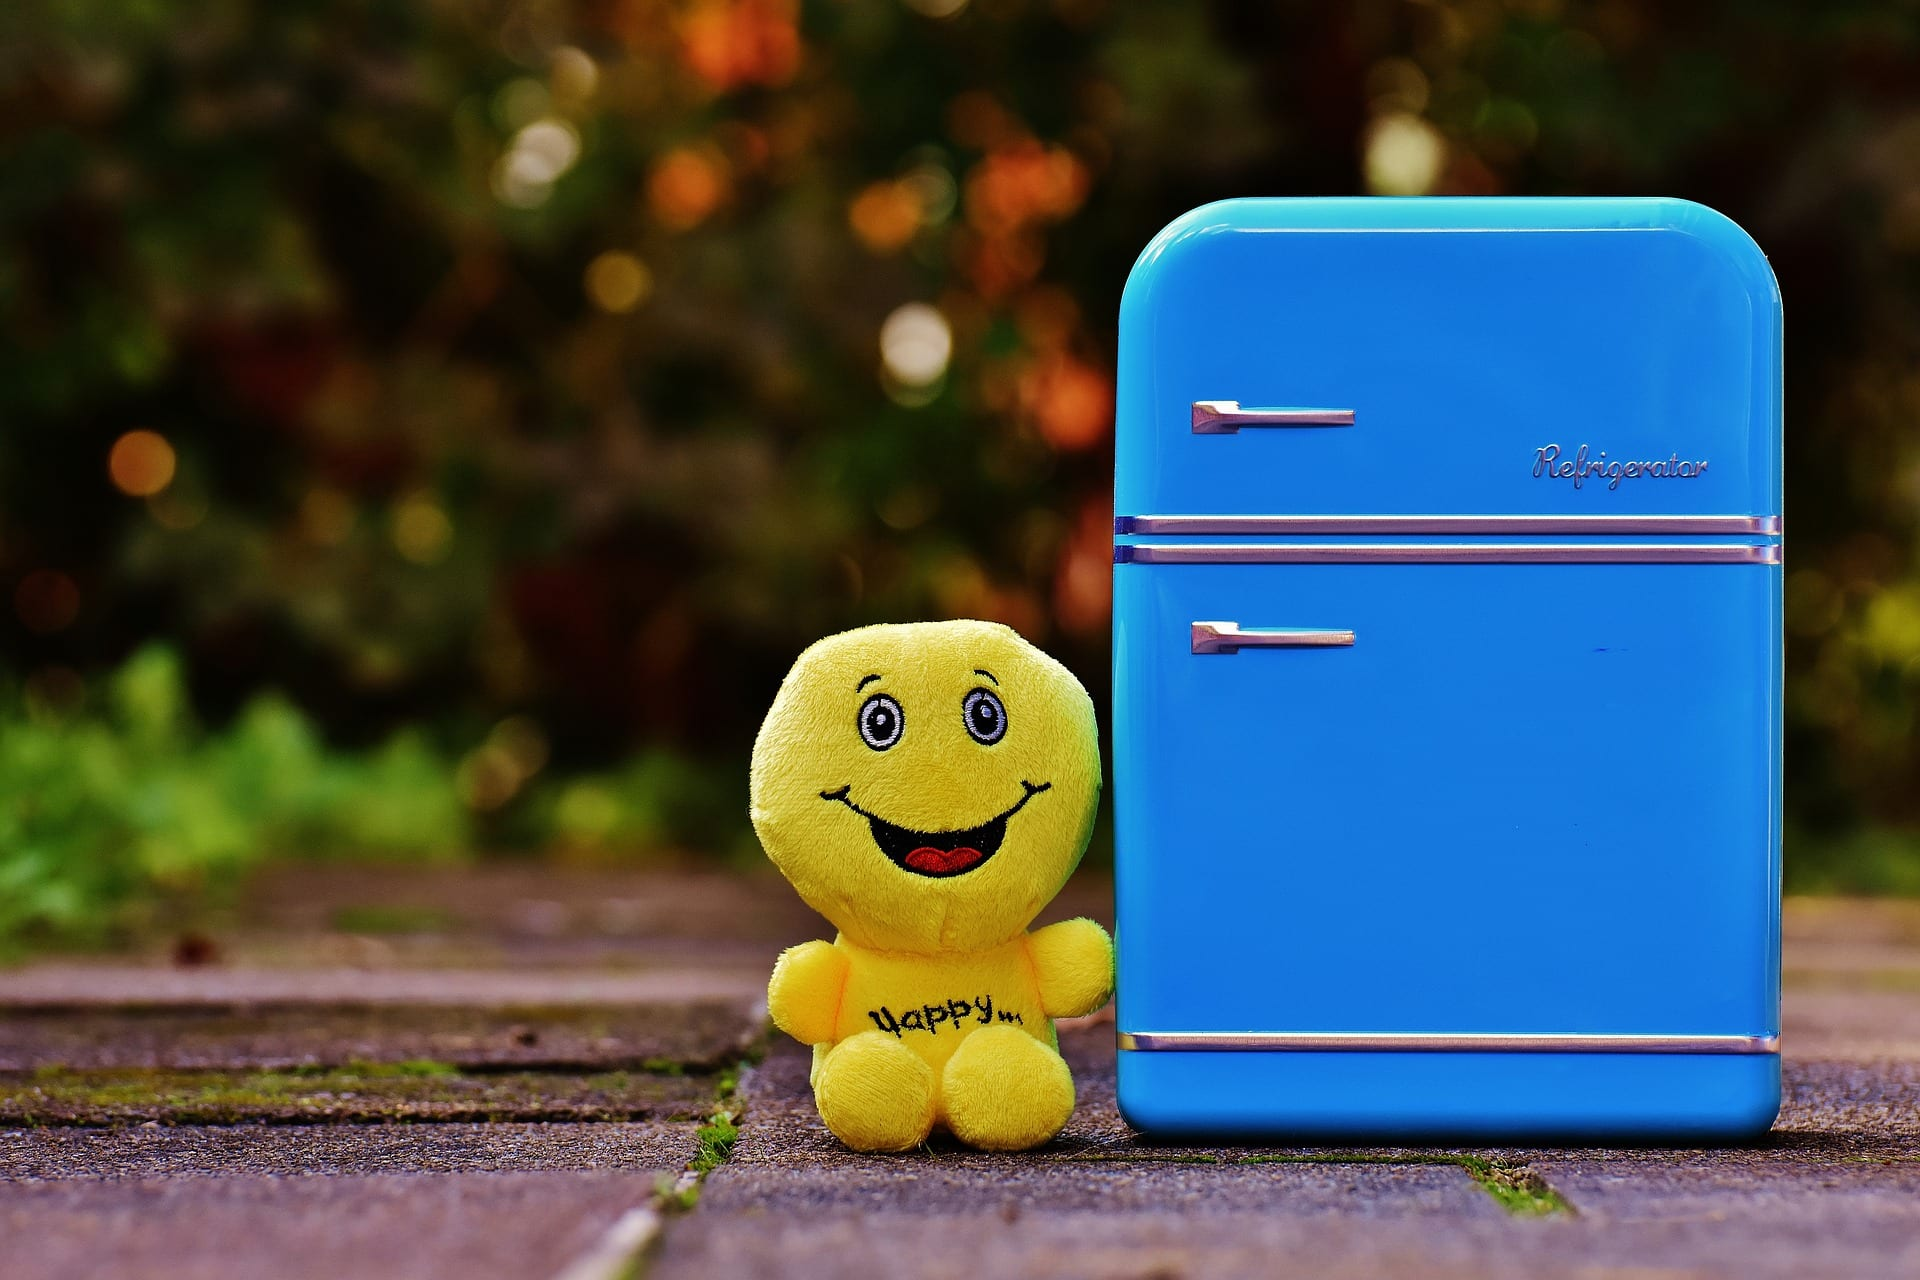 Smiling doll next to blue fridge